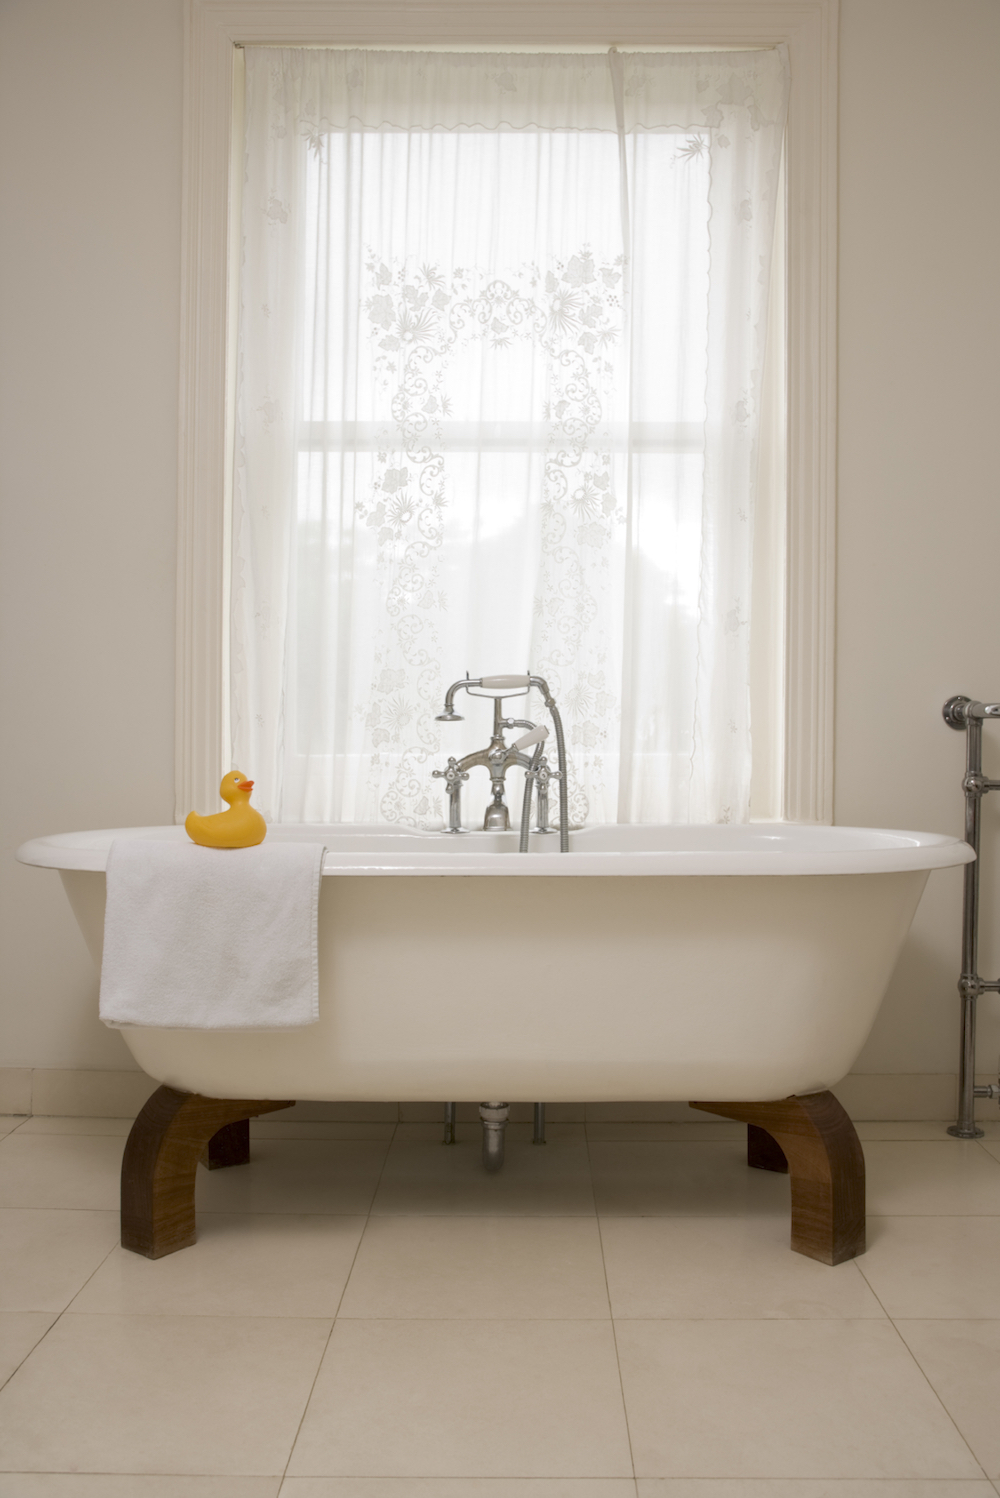 Easy Spring Decorating Ideas for an Updated Look - Replace the Bathoom Accessories